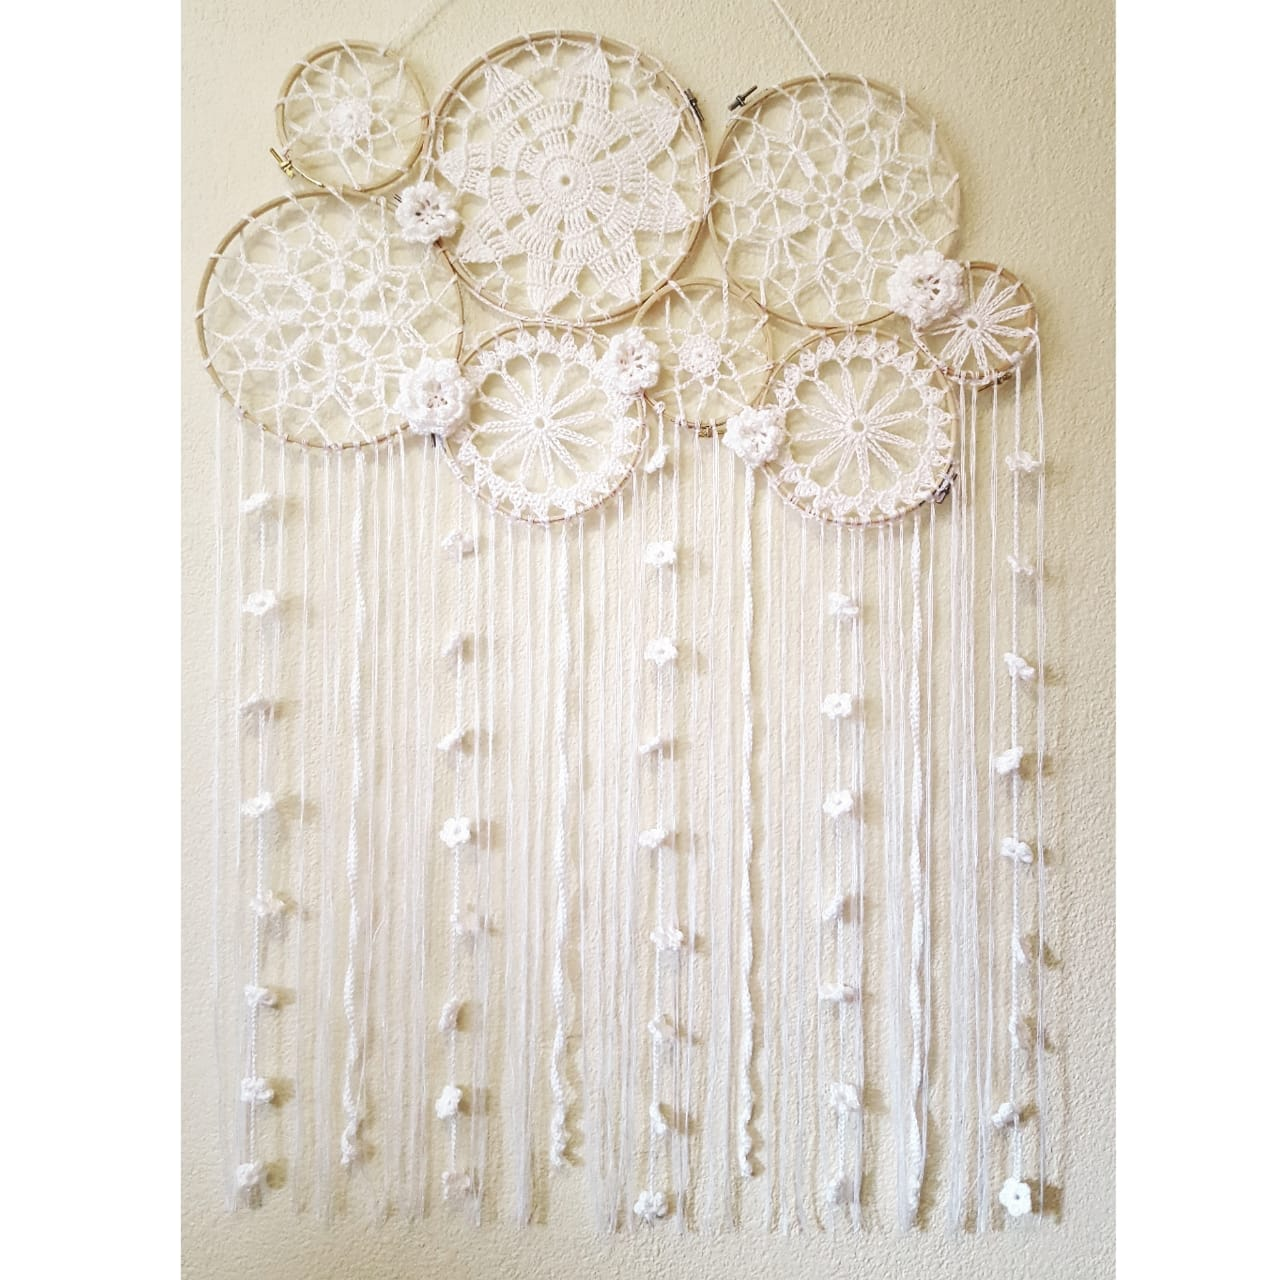 Crochet Dream Catcher With Flowers And Tassels Moo Chick